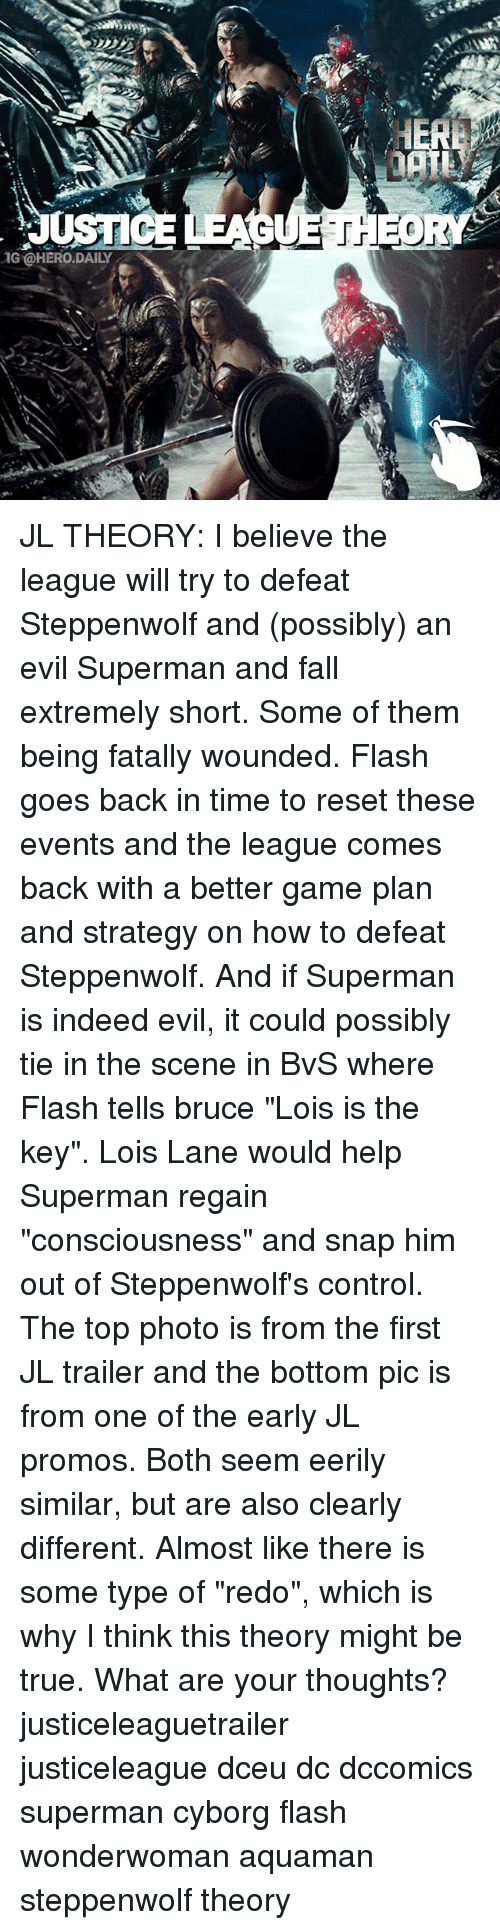 """Fall, Memes, and Superman: IG OHERO DAILY JL THEORY: I believe the league will try to defeat Steppenwolf and (possibly) an evil Superman and fall extremely short. Some of them being fatally wounded. Flash goes back in time to reset these events and the league comes back with a better game plan and strategy on how to defeat Steppenwolf. And if Superman is indeed evil, it could possibly tie in the scene in BvS where Flash tells bruce """"Lois is the key"""". Lois Lane would help Superman regain """"consciousness"""" and snap him out of Steppenwolf's control. The top photo is from the first JL trailer and the bottom pic is from one of the early JL promos. Both seem eerily similar, but are also clearly different. Almost like there is some type of """"redo"""", which is why I think this theory might be true. What are your thoughts? justiceleaguetrailer justiceleague dceu dc dccomics superman cyborg flash wonderwoman aquaman steppenwolf theory"""